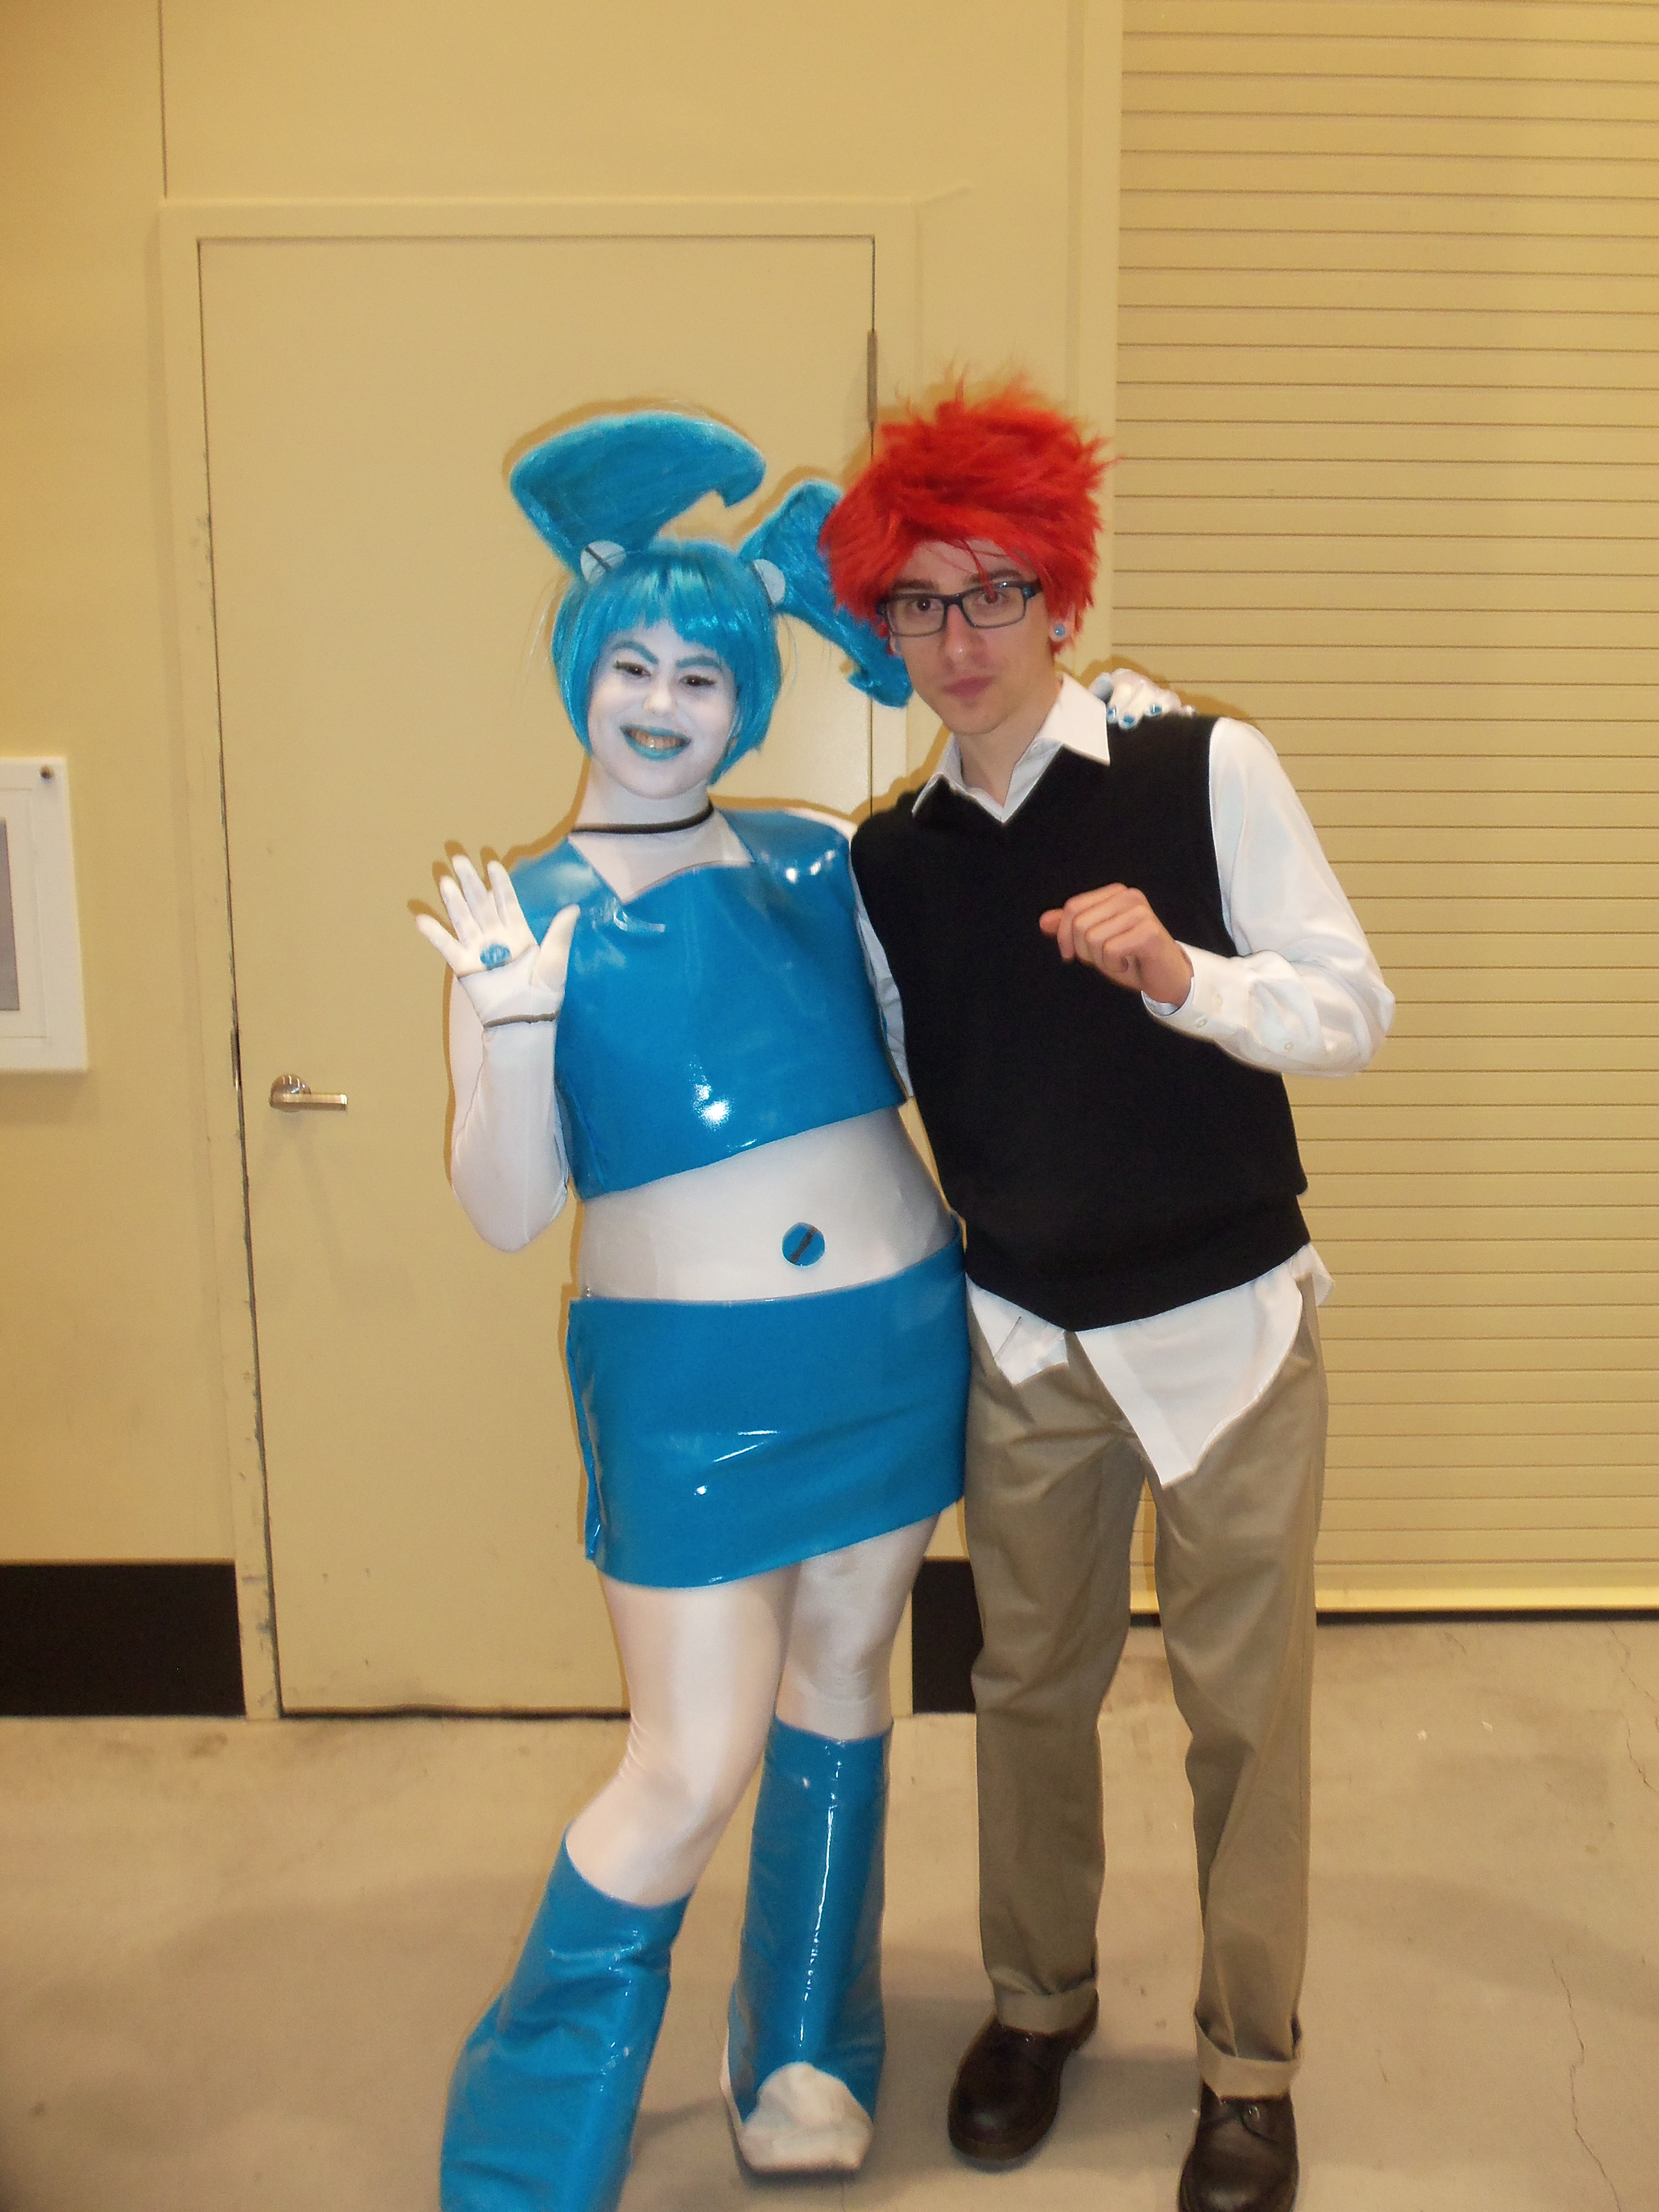 My life as a teenage robot cosplay